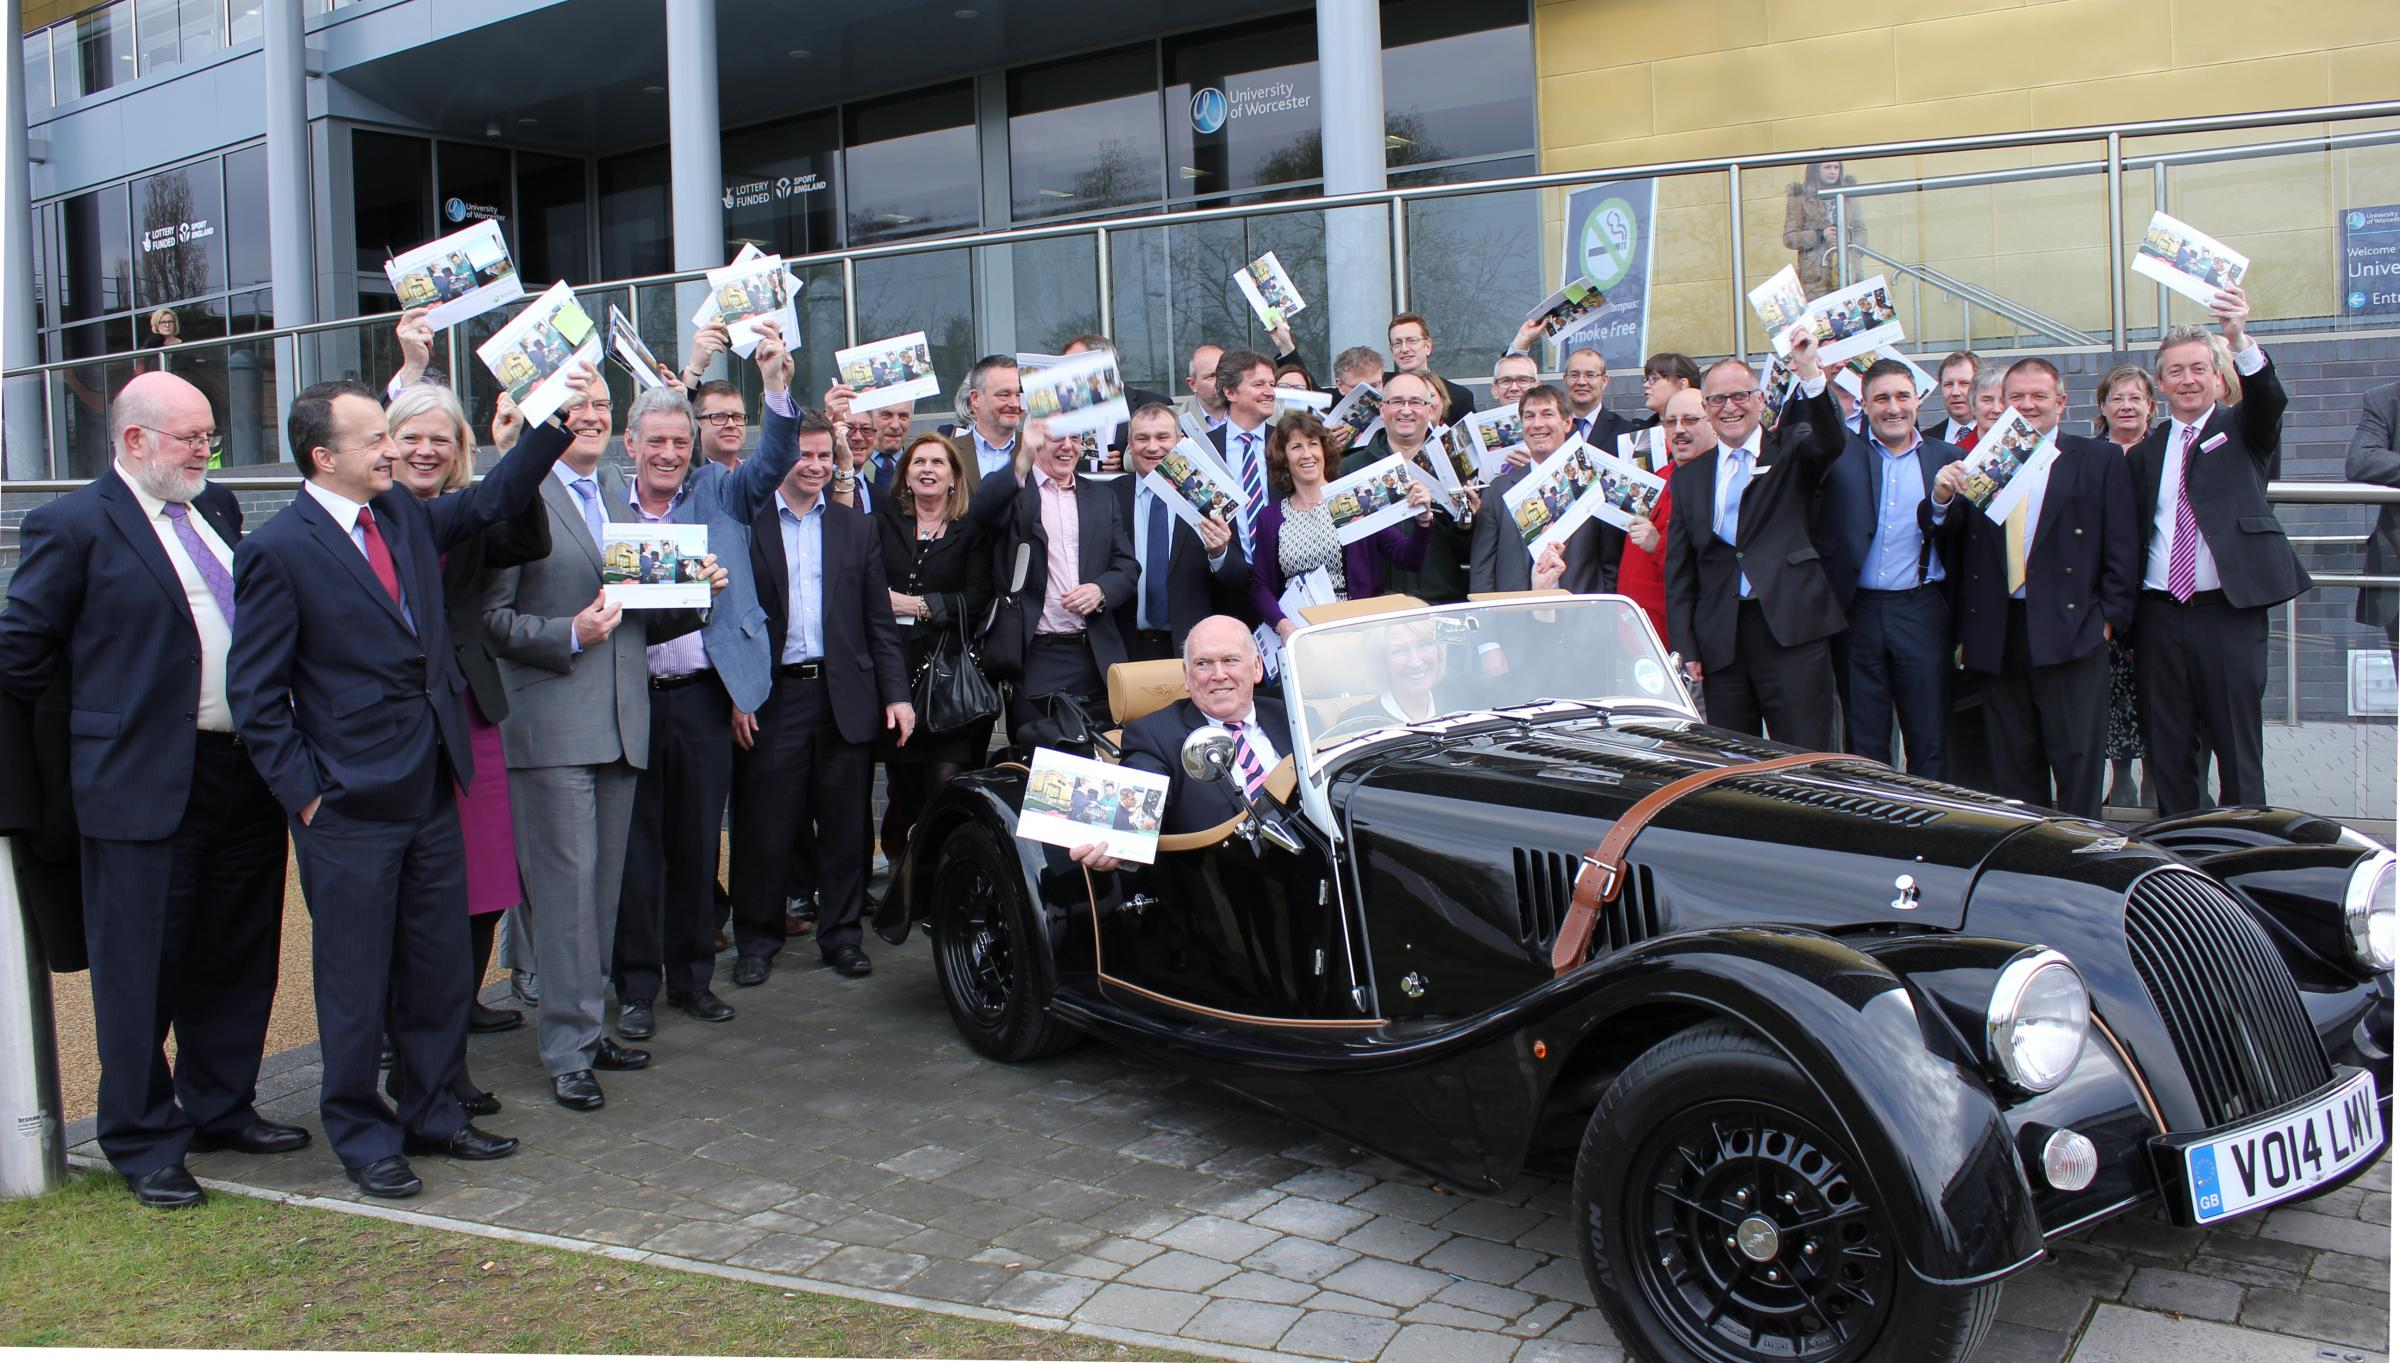 Worcestershire Sends Off Strategic Economic Plan (SEP) In Style